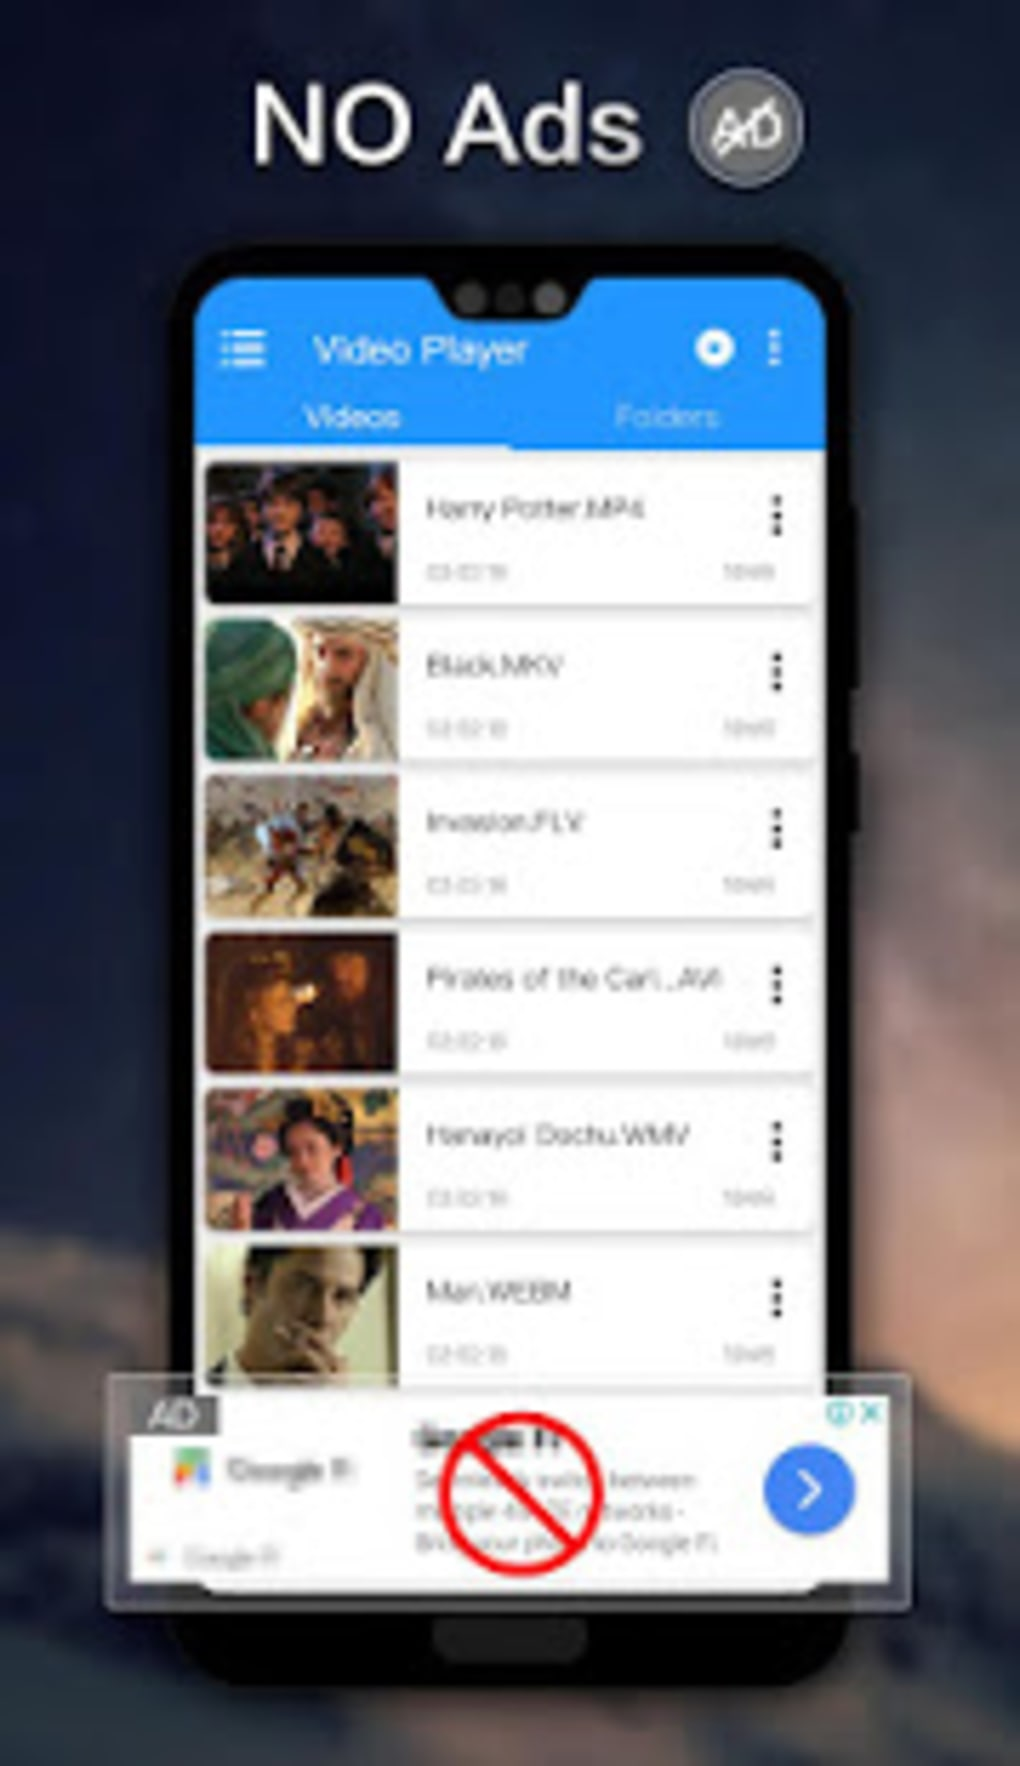 Hd player-Private video player for Android - Download